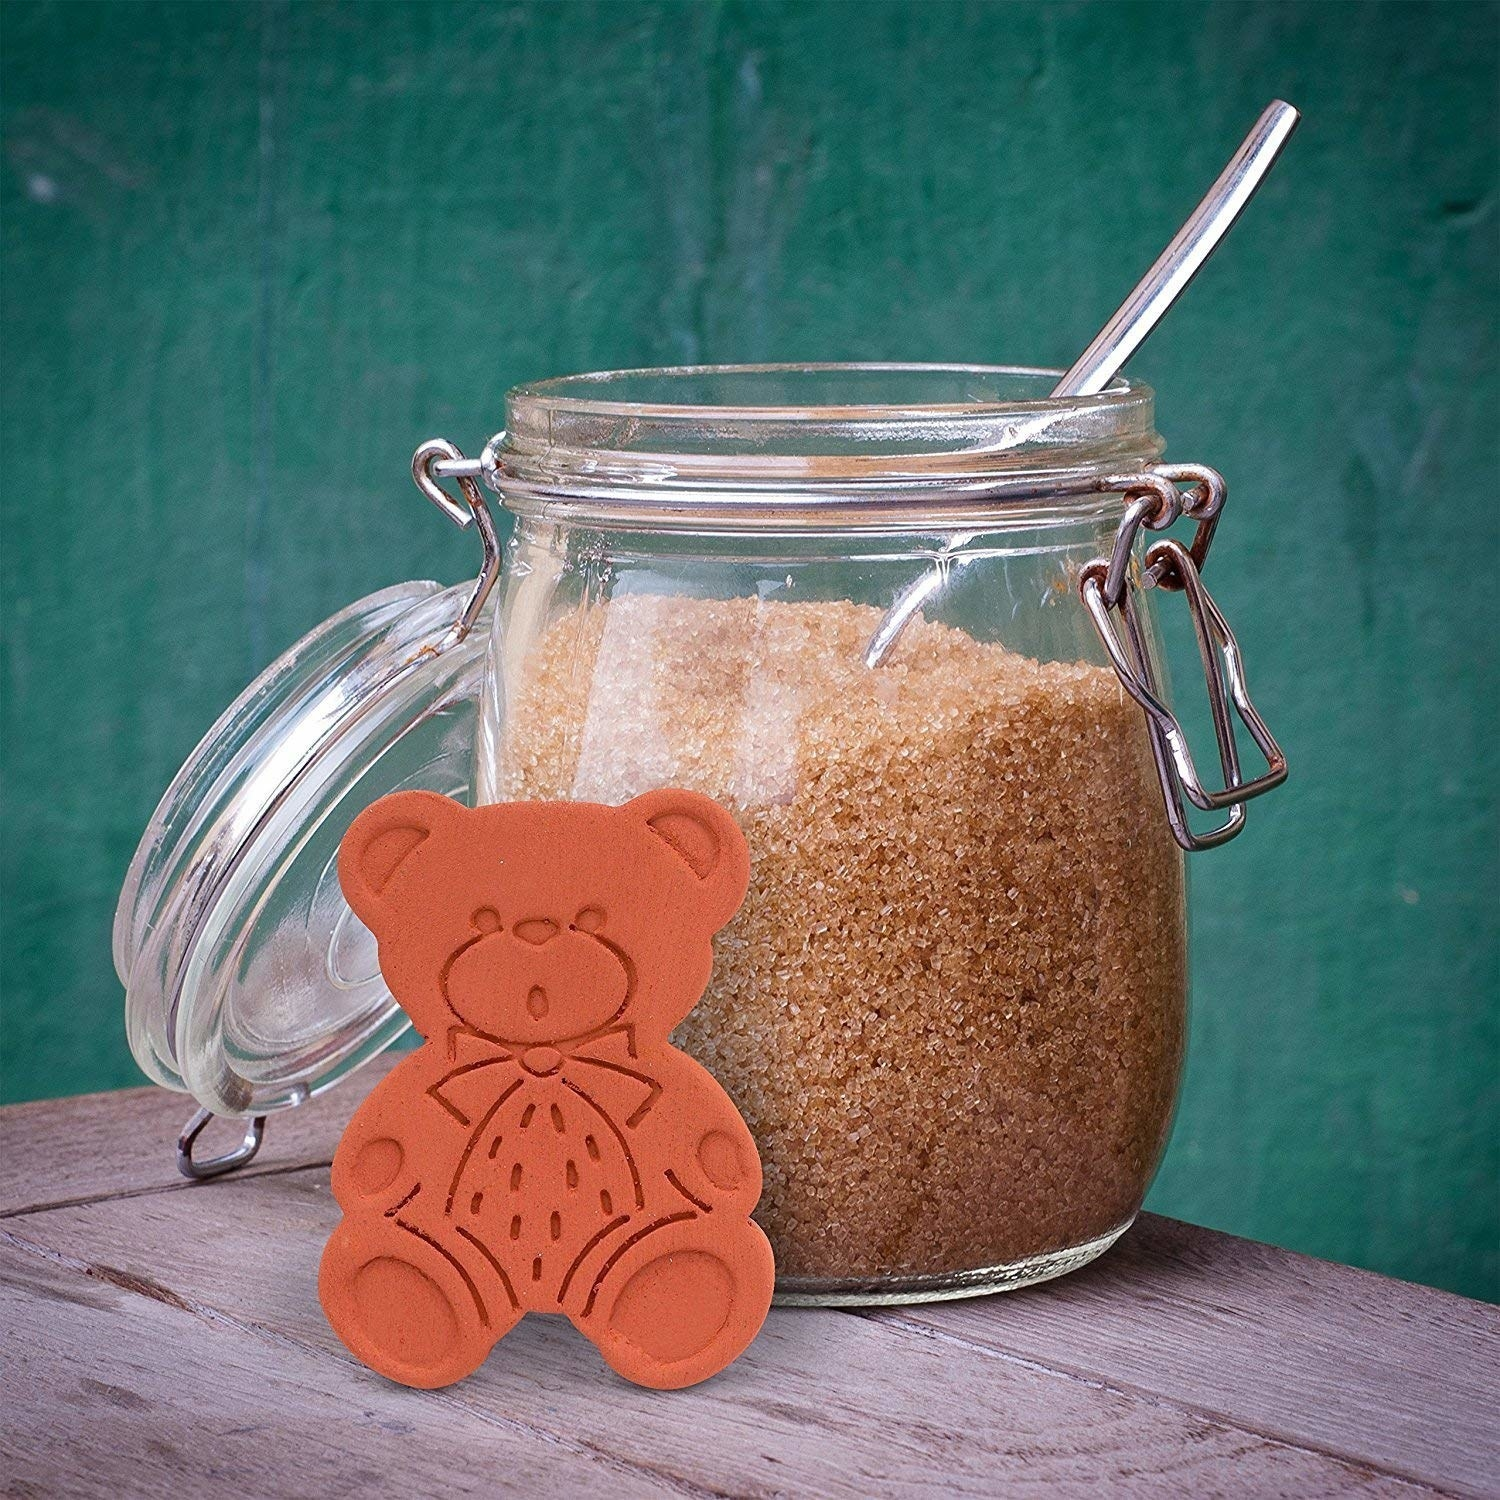 the bear beside a jar of brown sugar